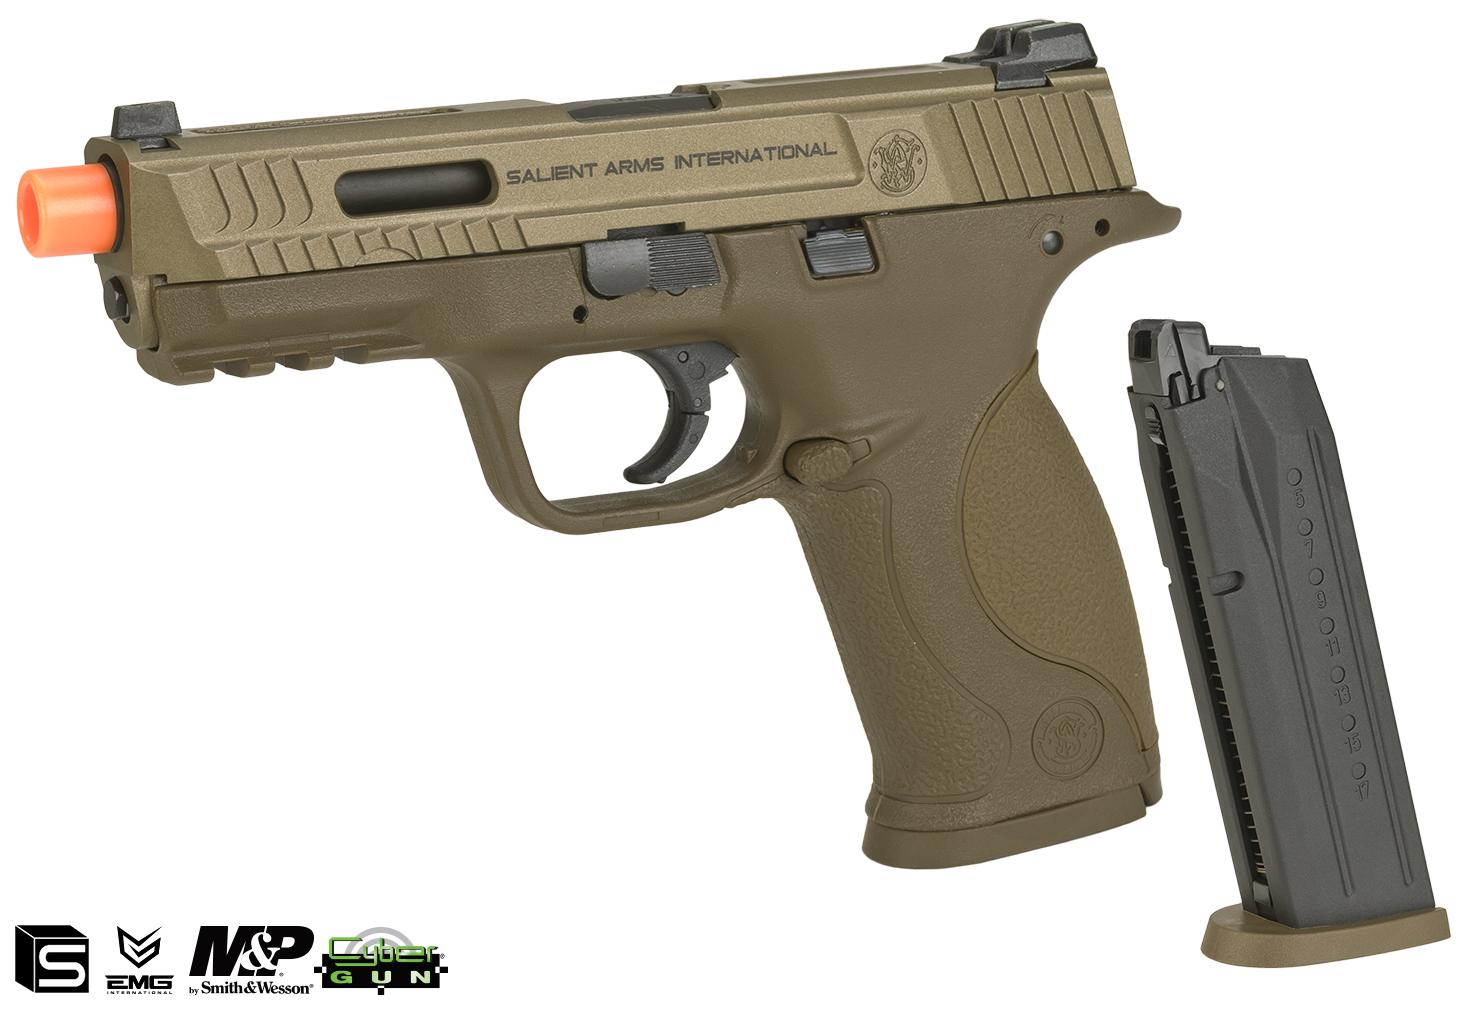 EMG / SAI / Smith & Wesson Licensed M&P 9 Full Size Airsoft GBB Pistol - Tan (Package: Add Extra Magazine)